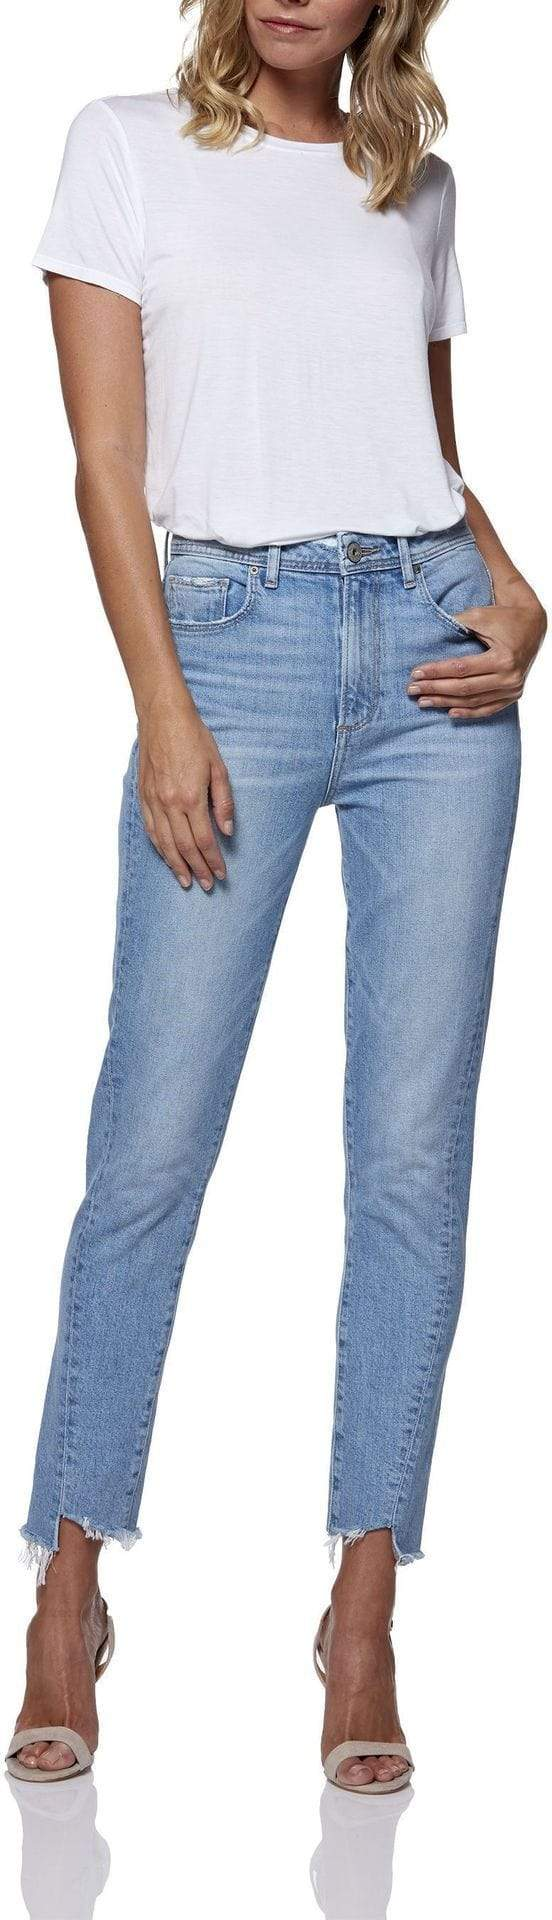 Paige Denim Sarah Twist Seam Slim Carlotta